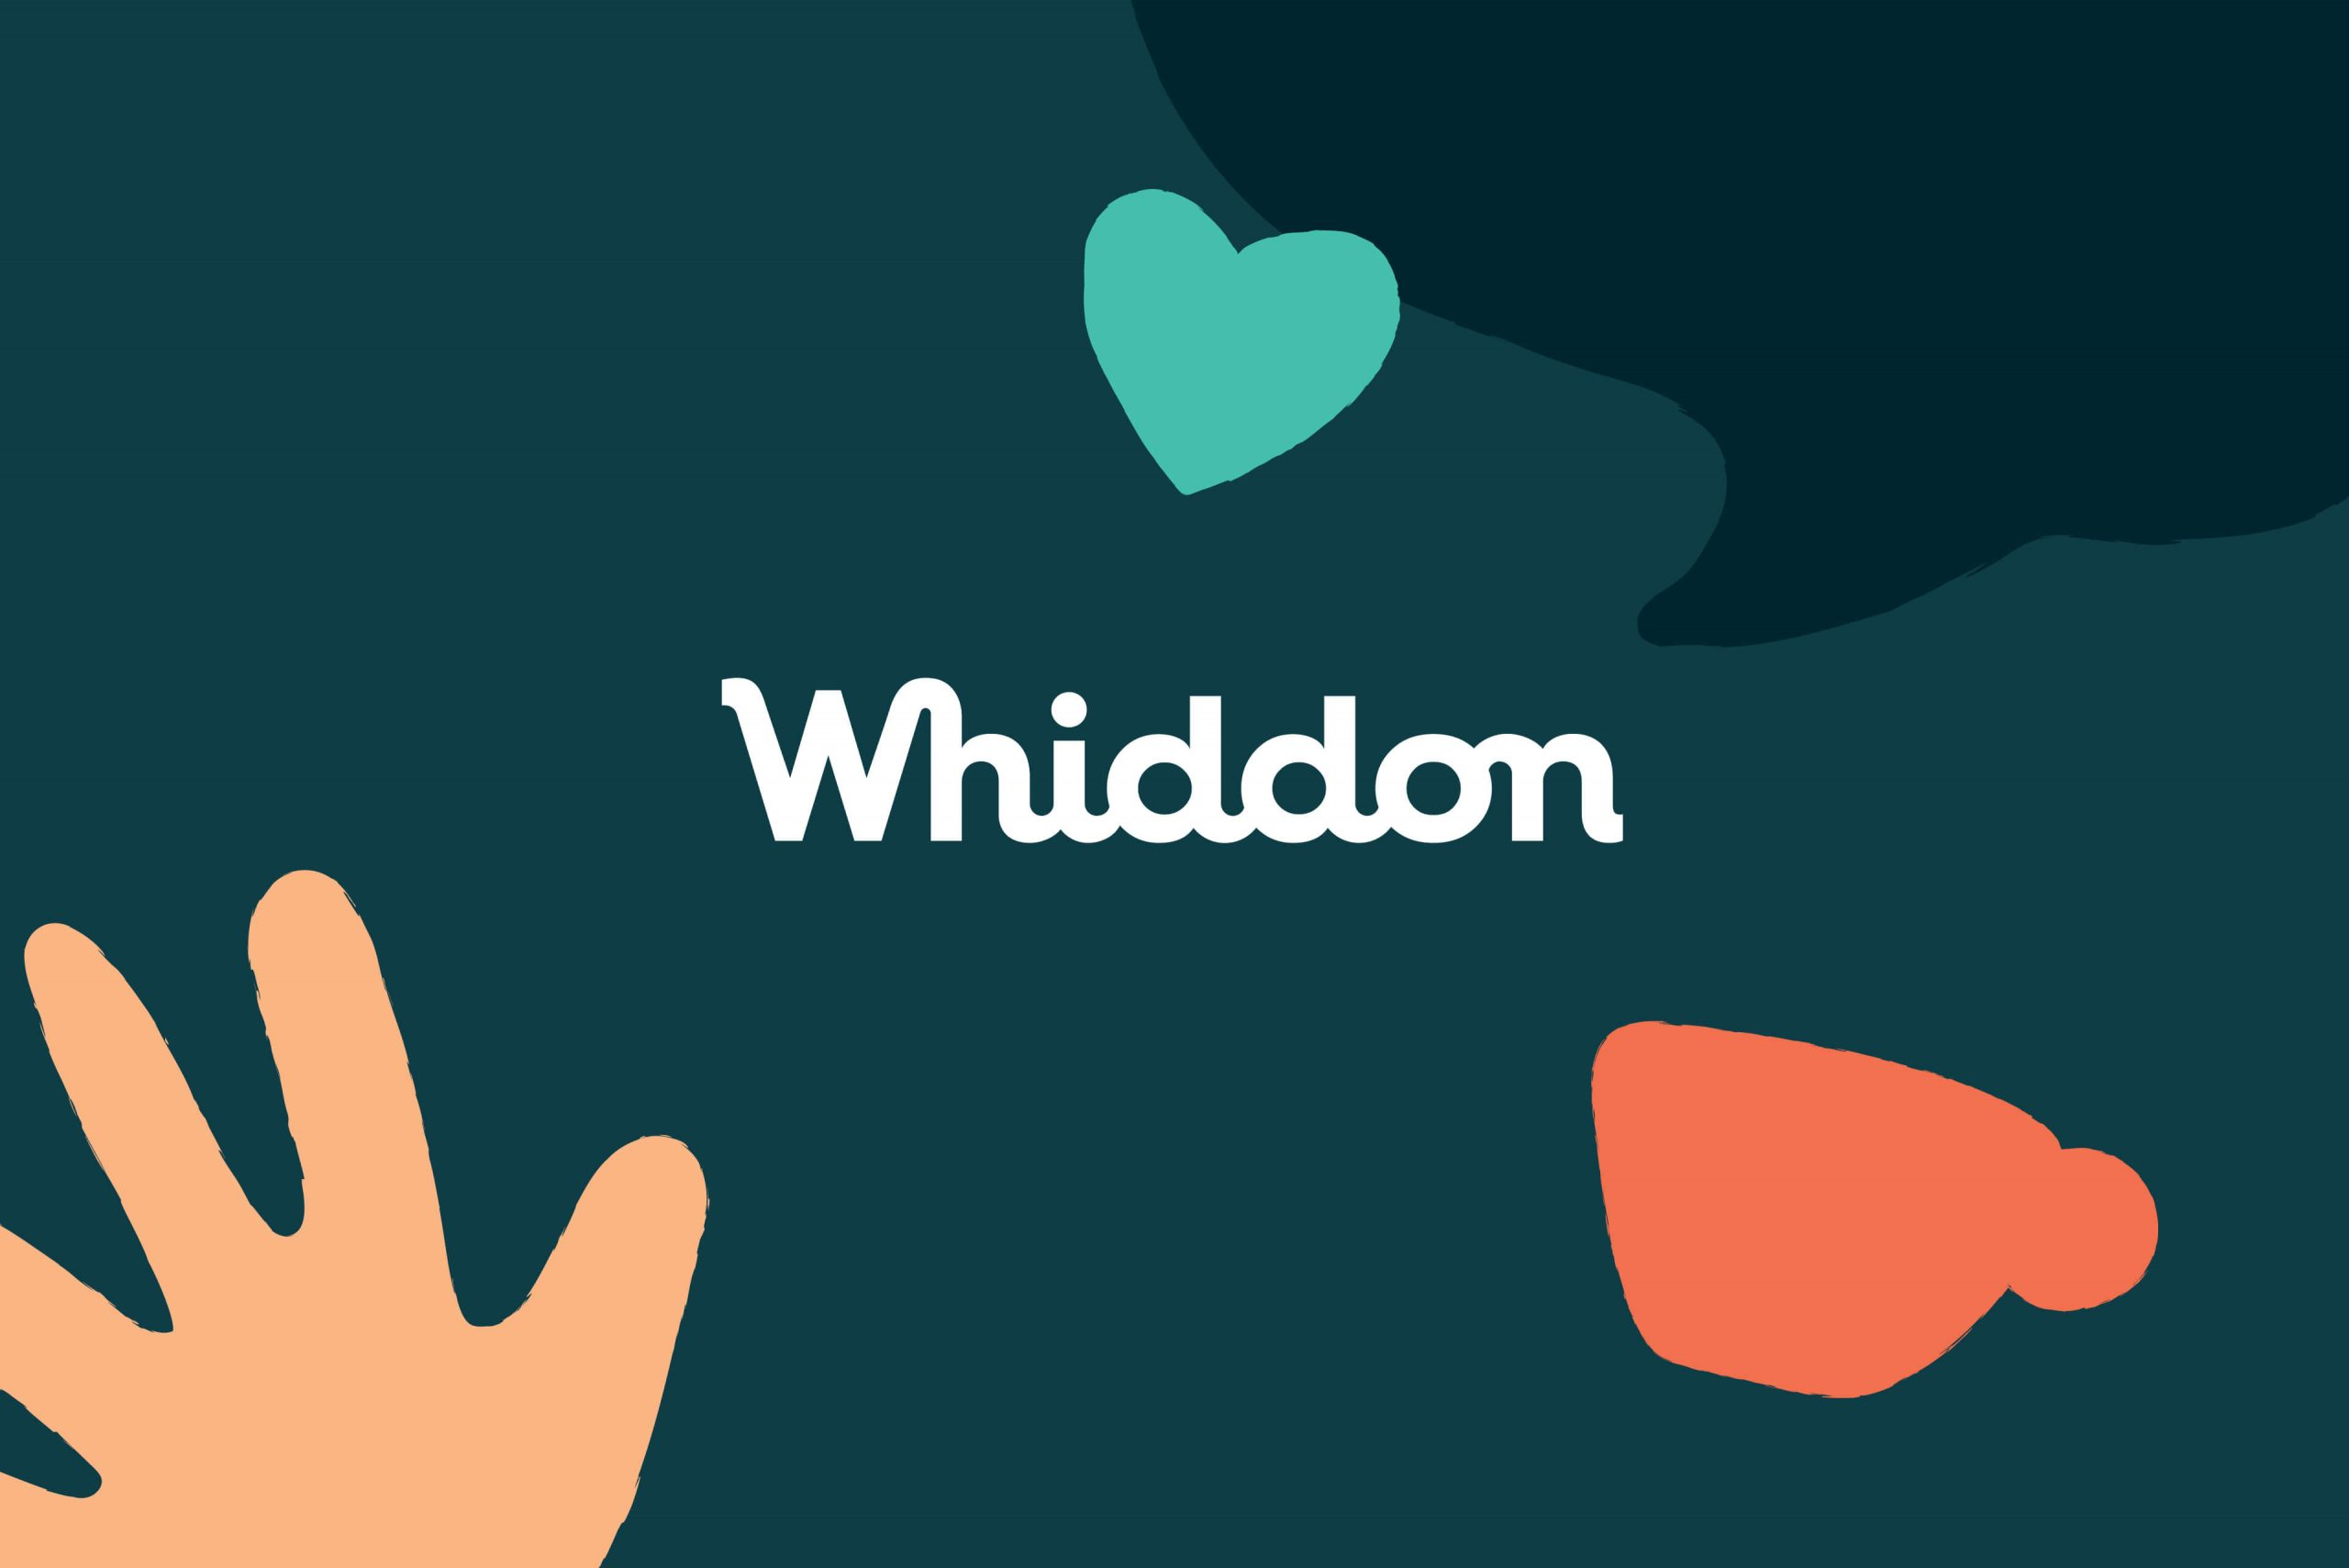 Whiddon Brand Refresh - Logotpye & core brand shapes